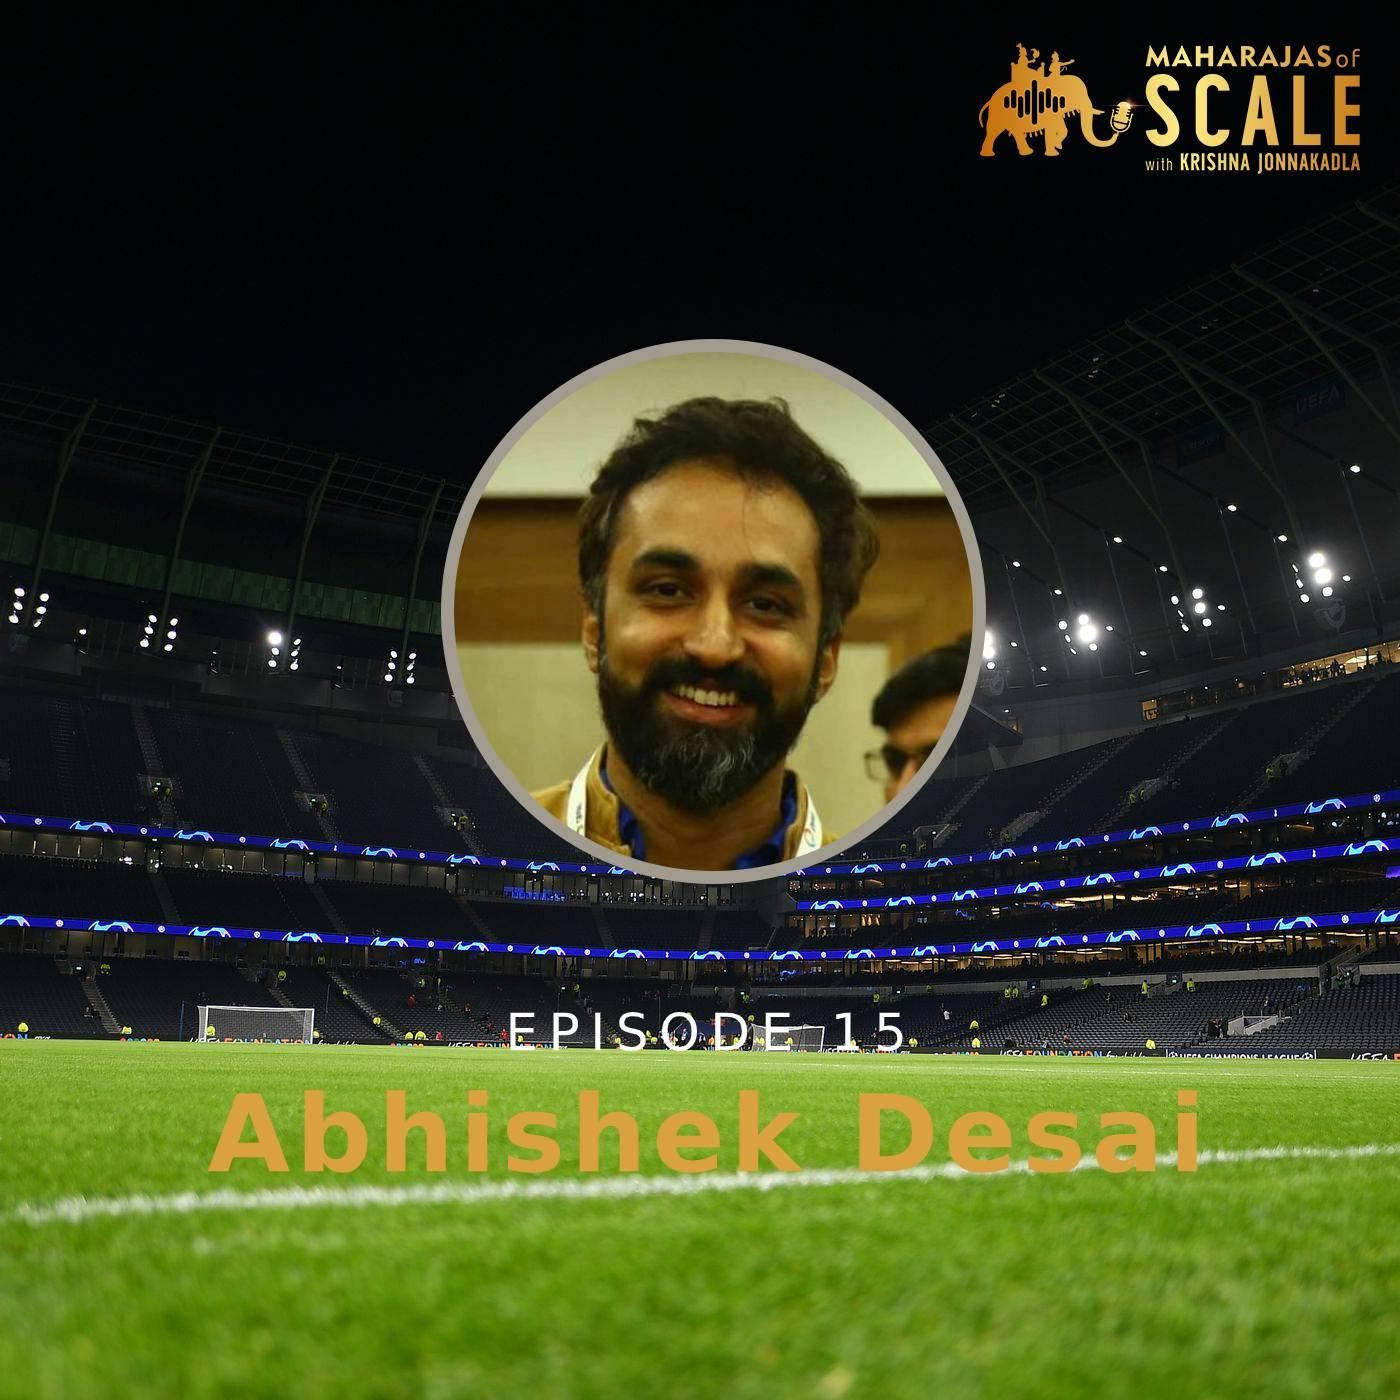 Ep.15: Abhishek Desai of CricHeroes - Unlikely Cricket Success story, Creative mind, Failed attempts, Scored Digitally at Scale